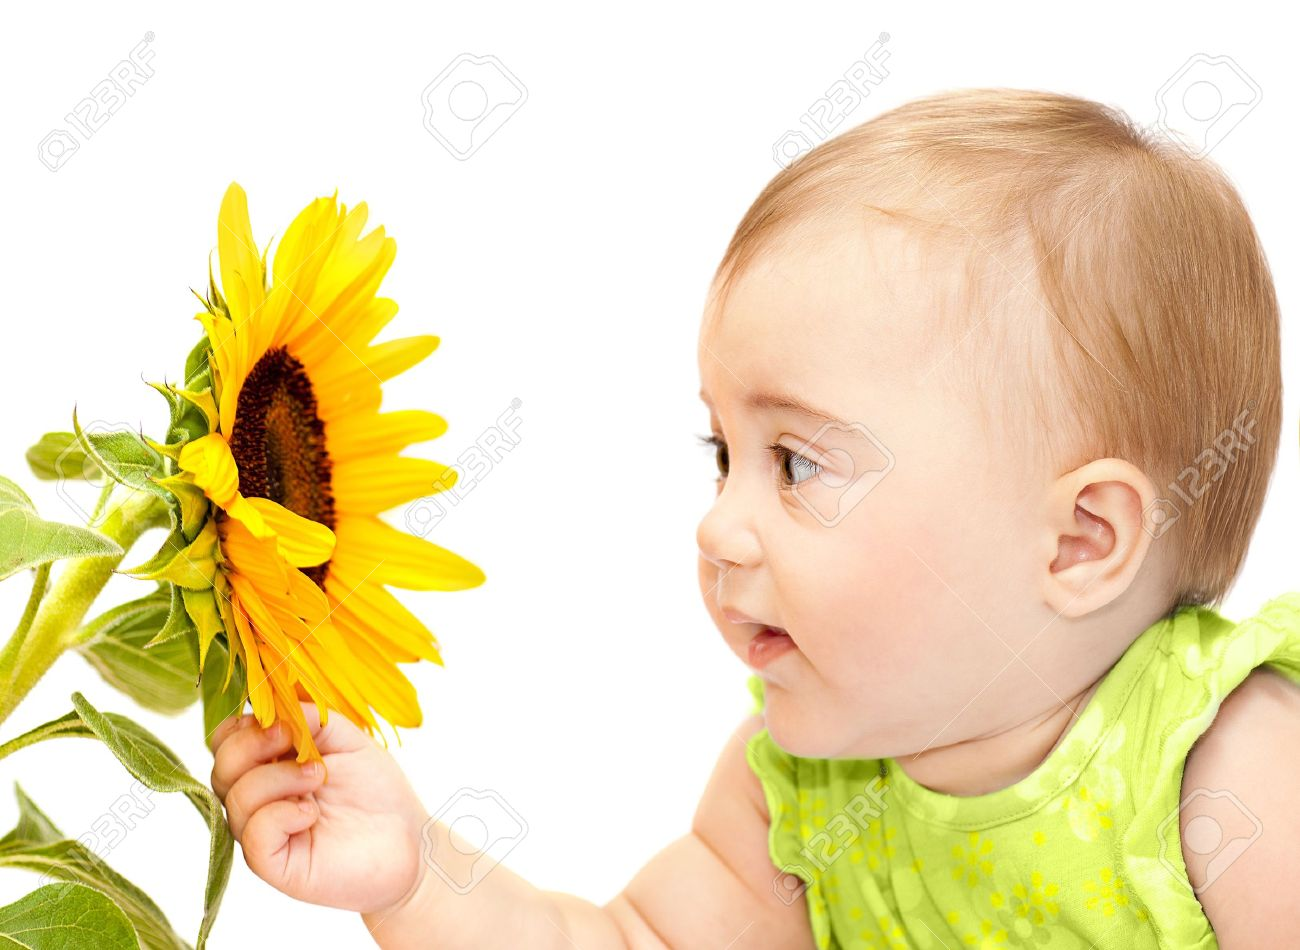 baby girl exploring flower, elementary study of nature, cute.. stock